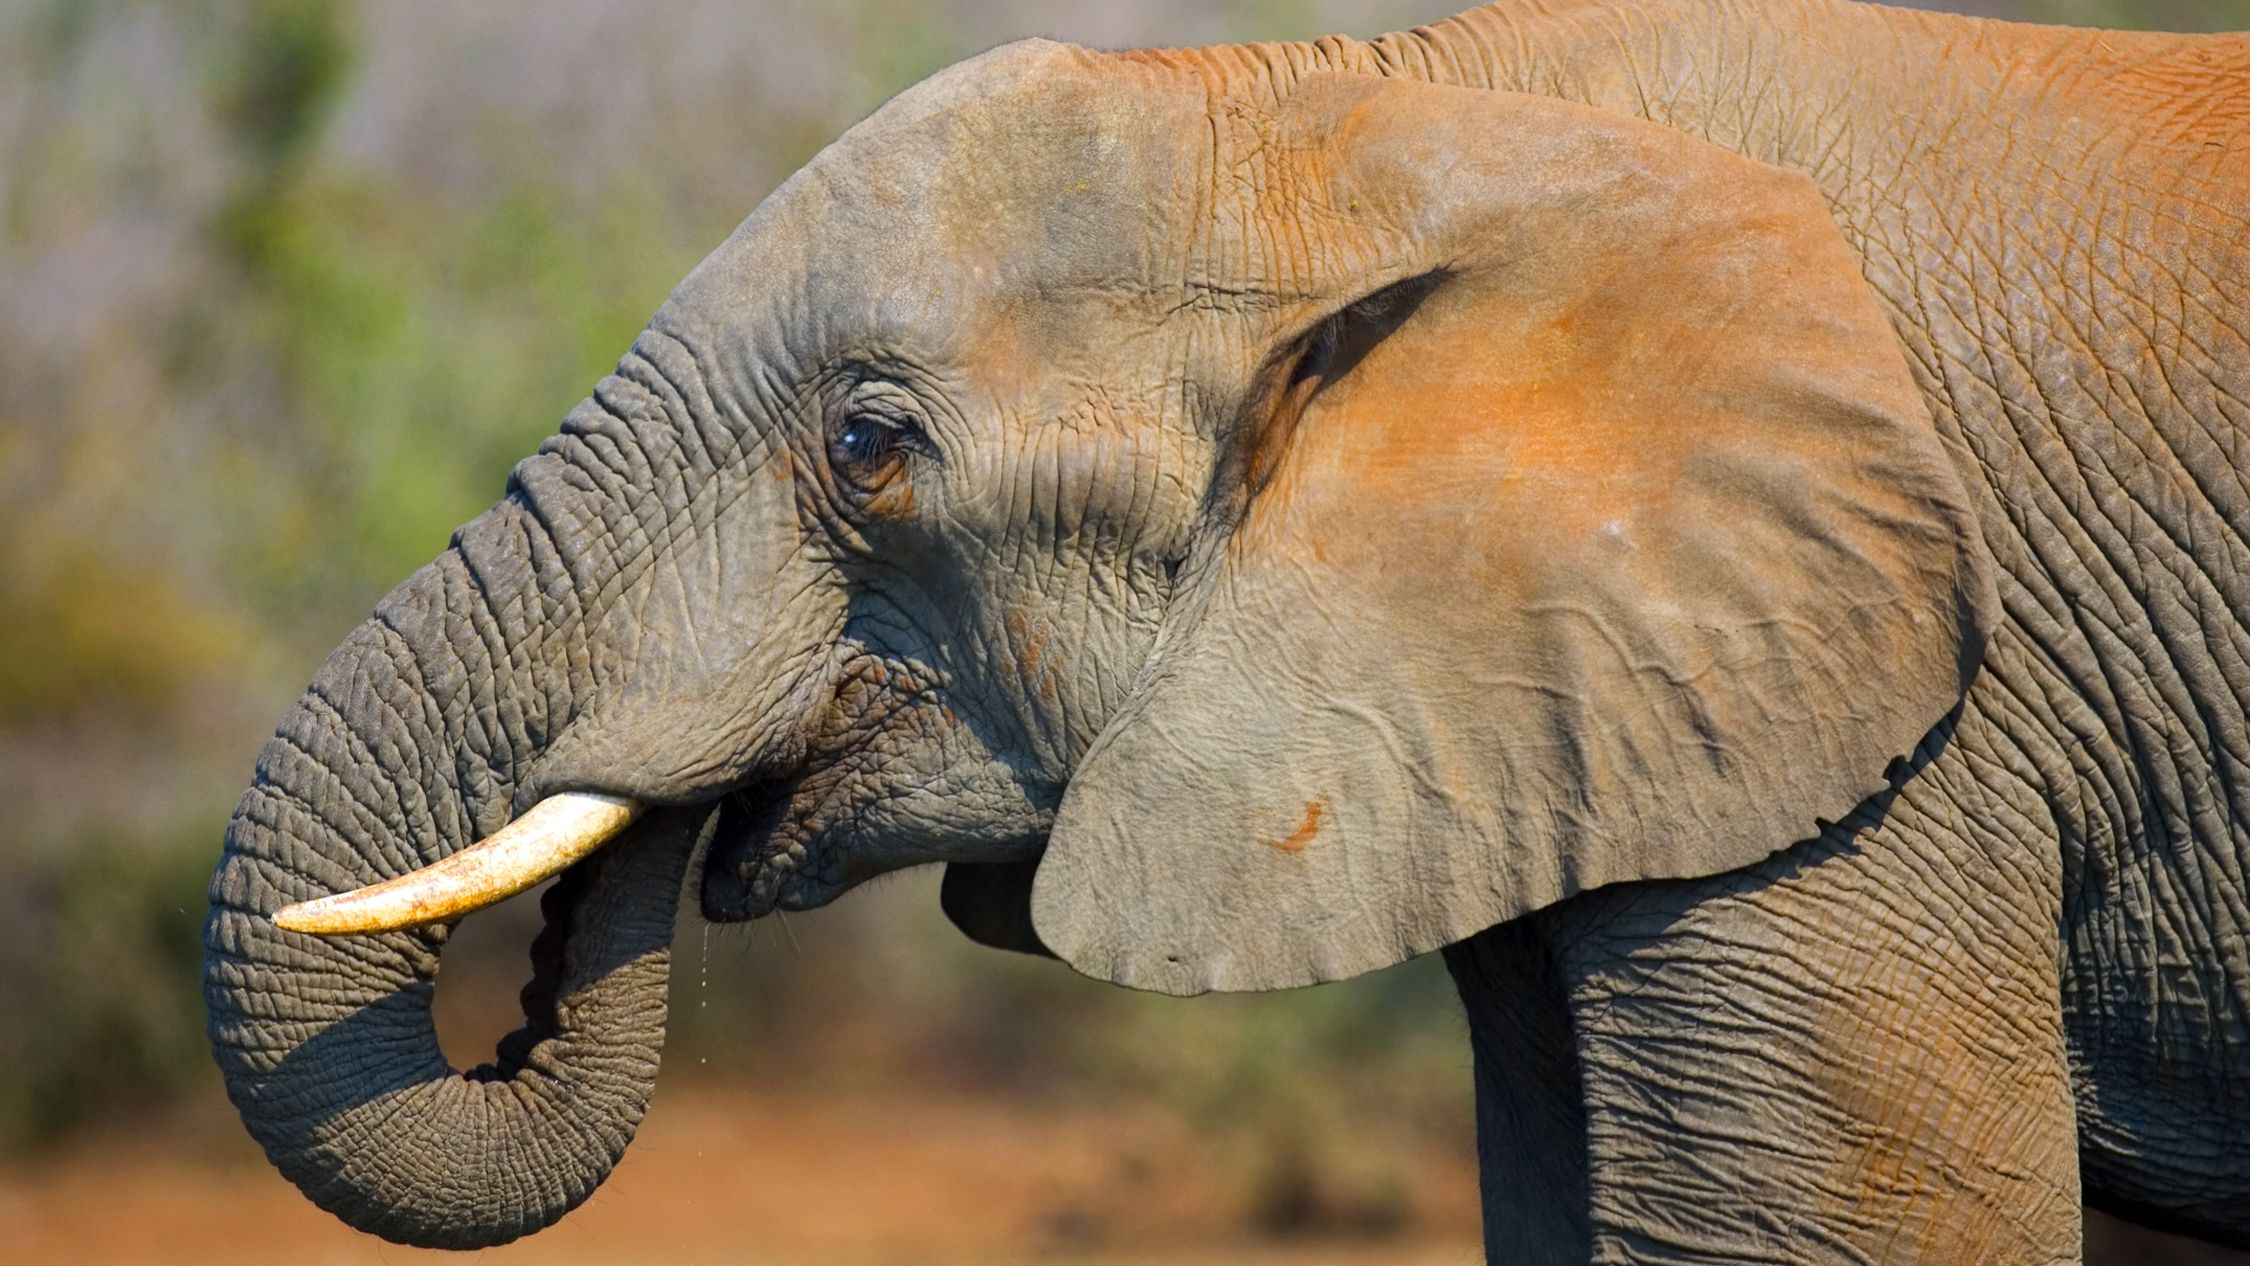 How Does an Elephant Use its Trunk?